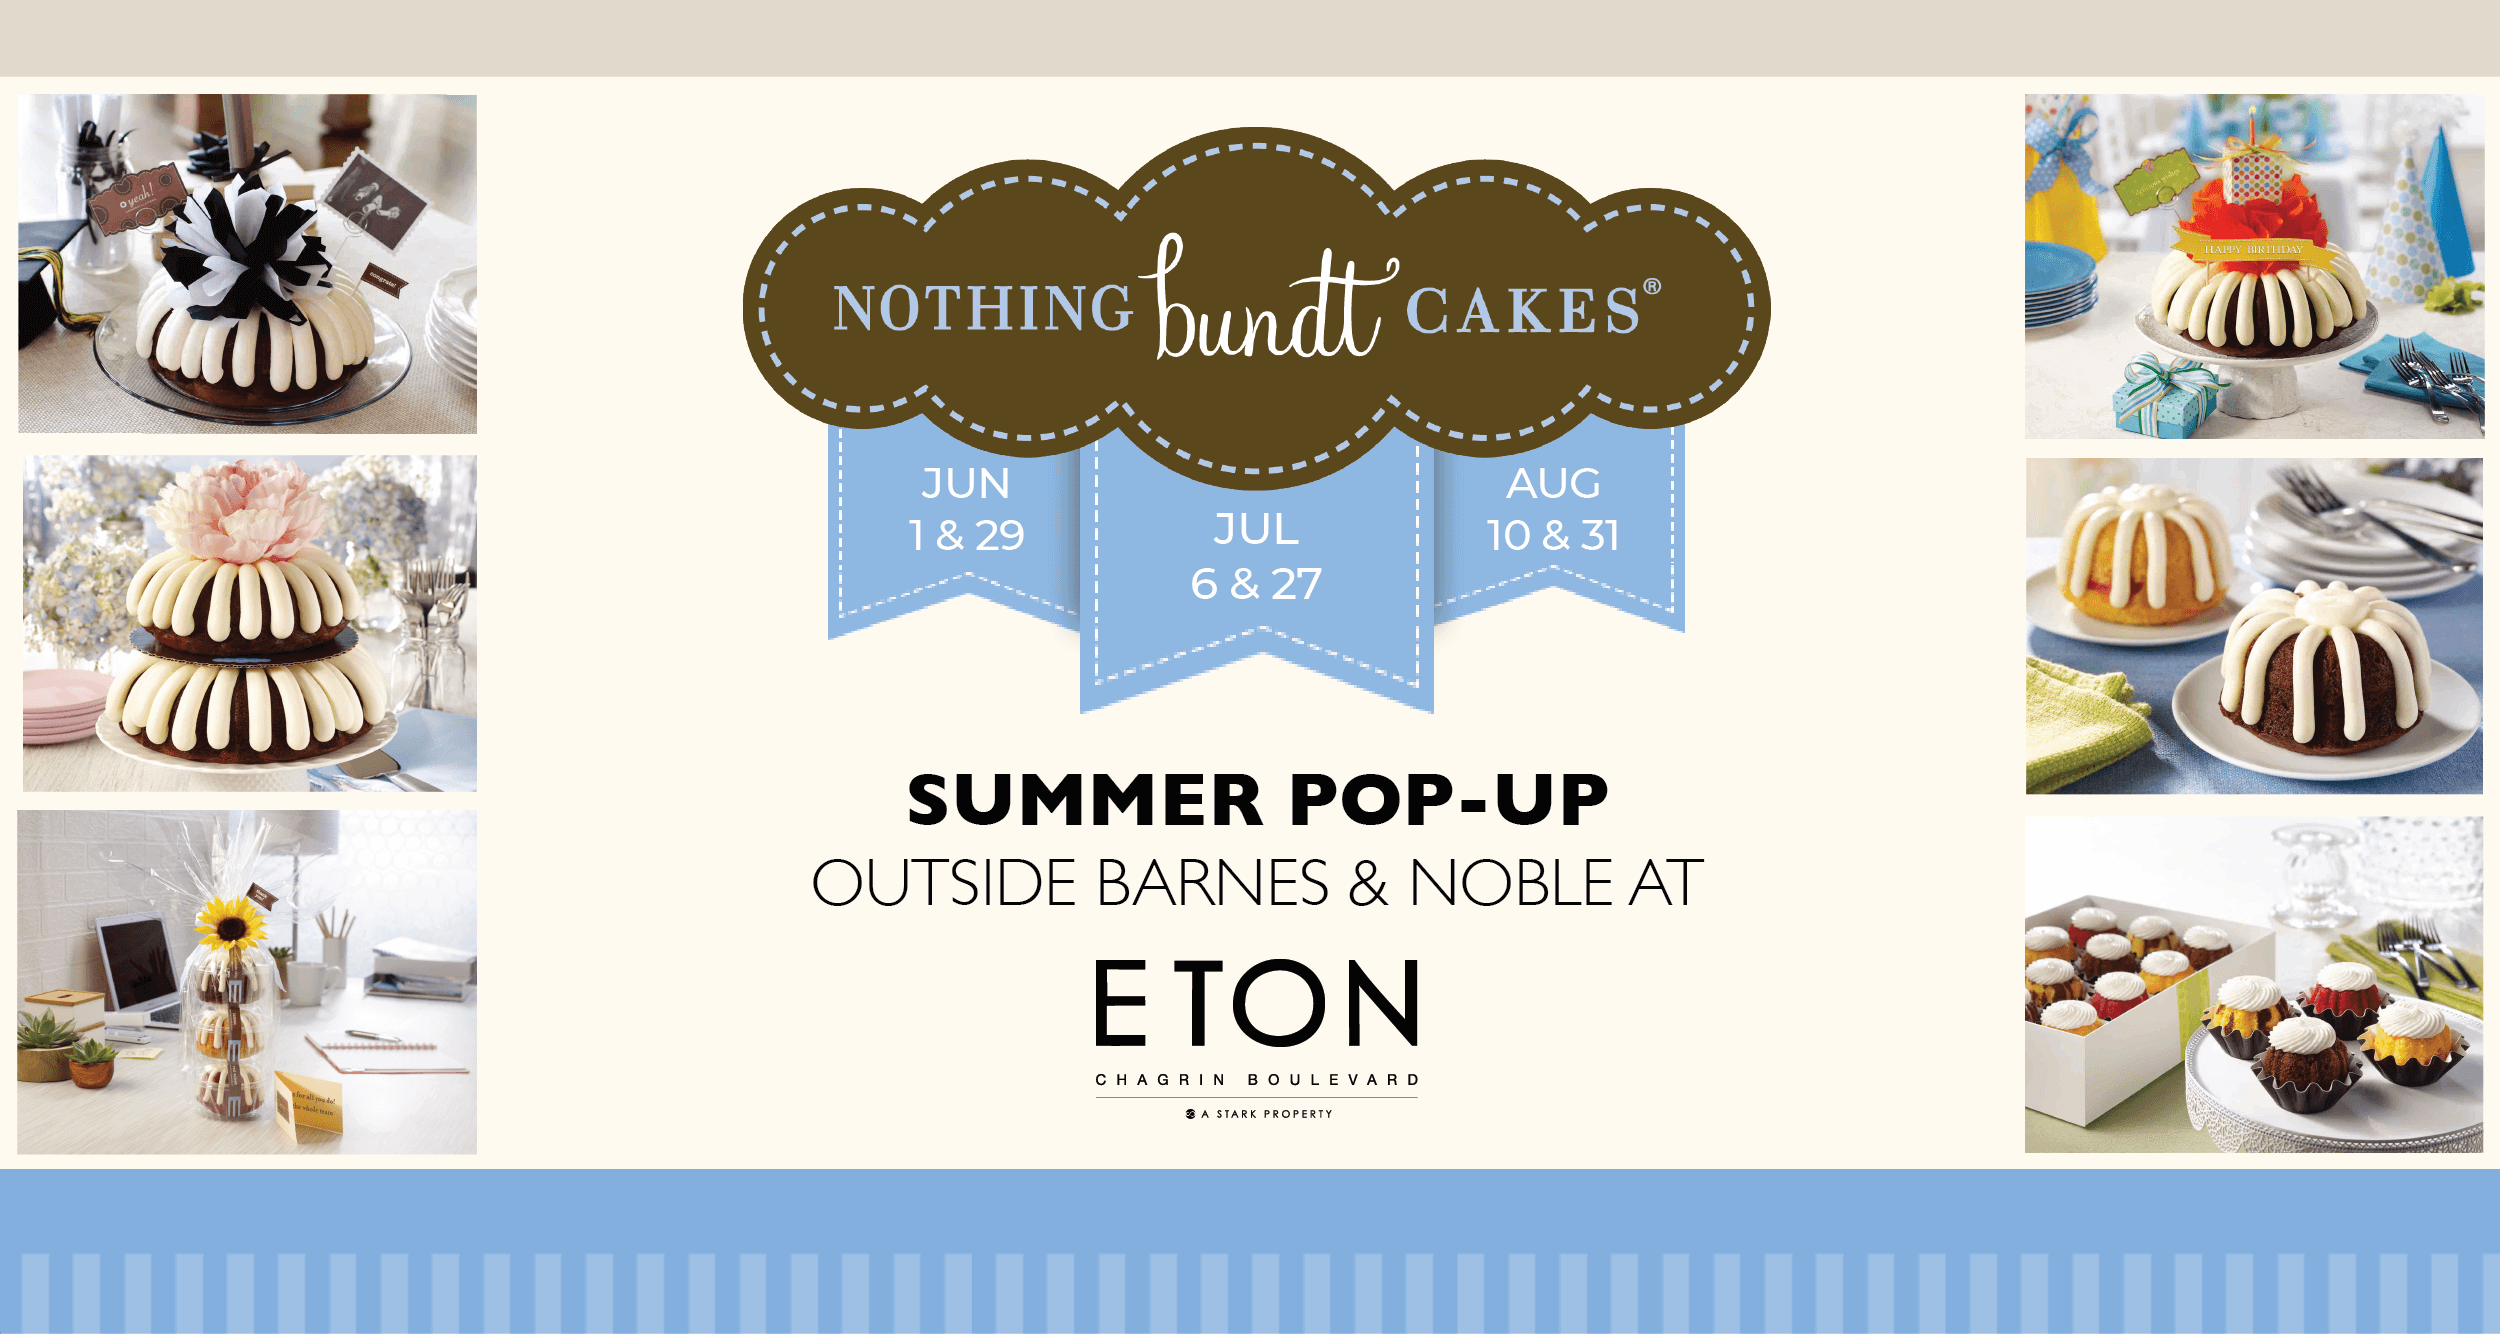 Nothing Bundt Cakes Pop-up